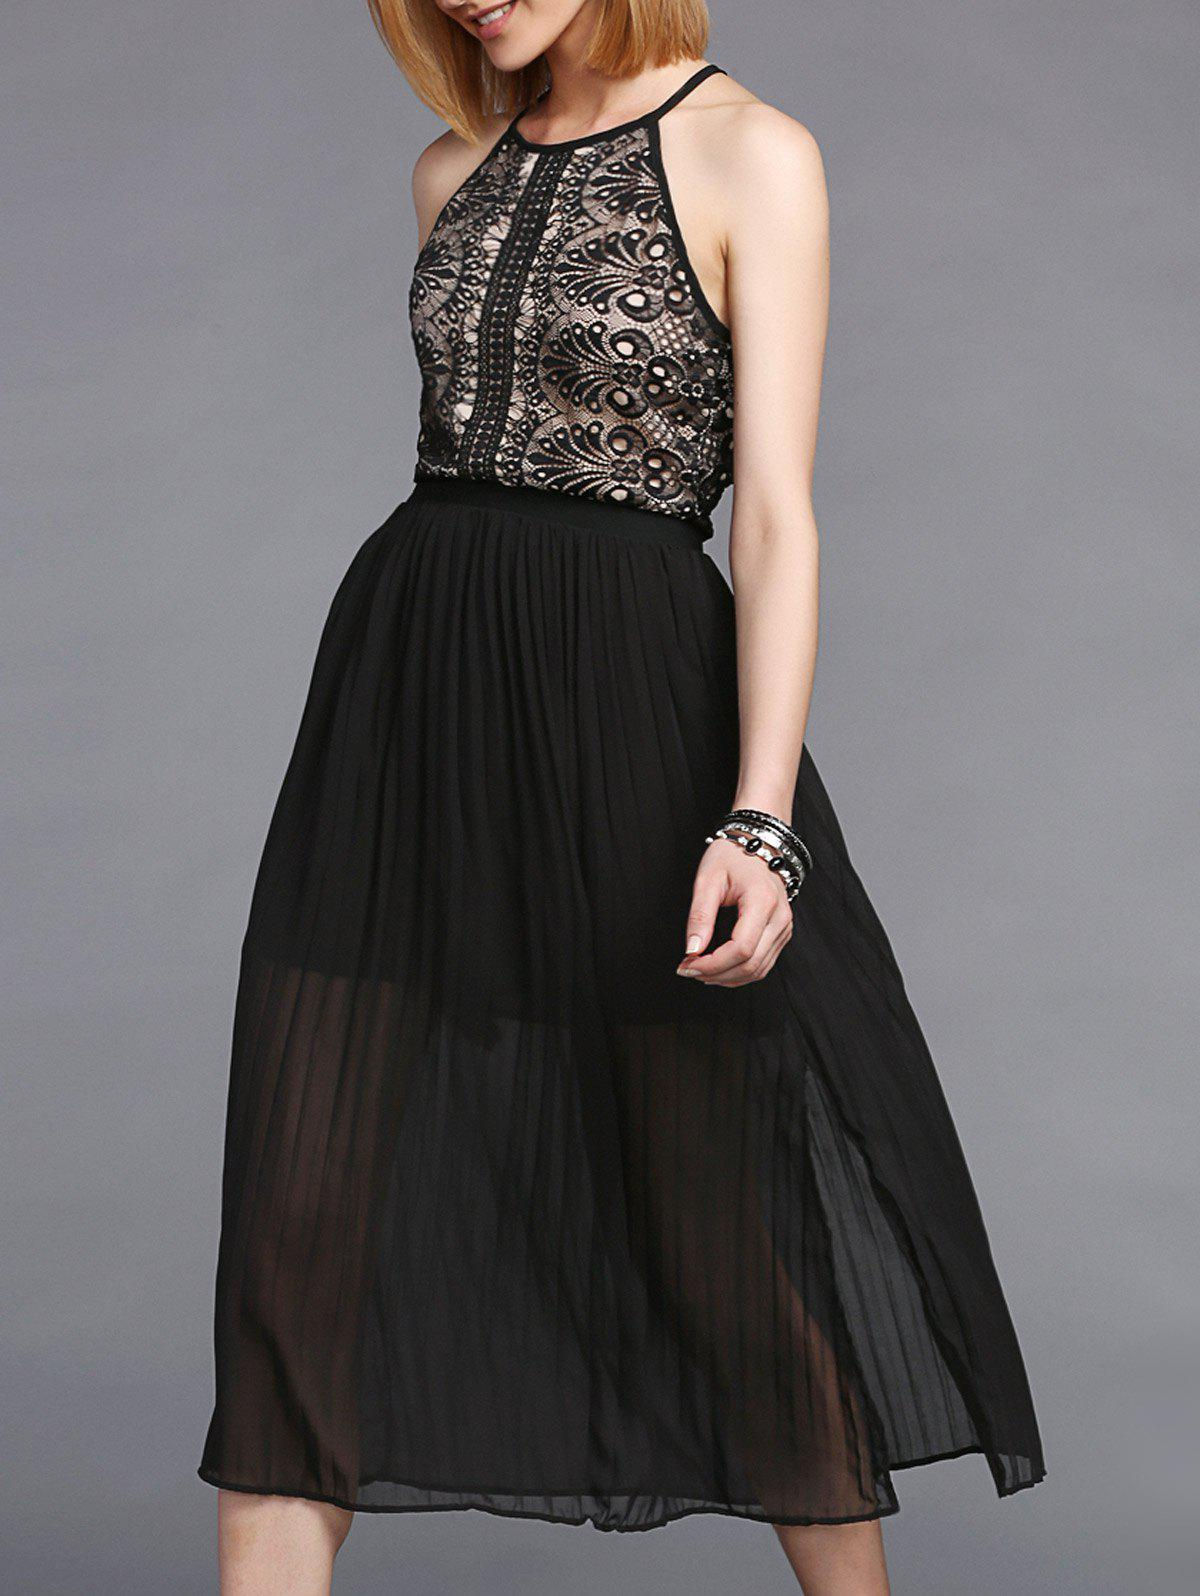 Trendy Sleeveless Furcal Pleated Lace Spliced Women's Dress - BLACK ONE SIZE(FIT SIZE XS TO M)